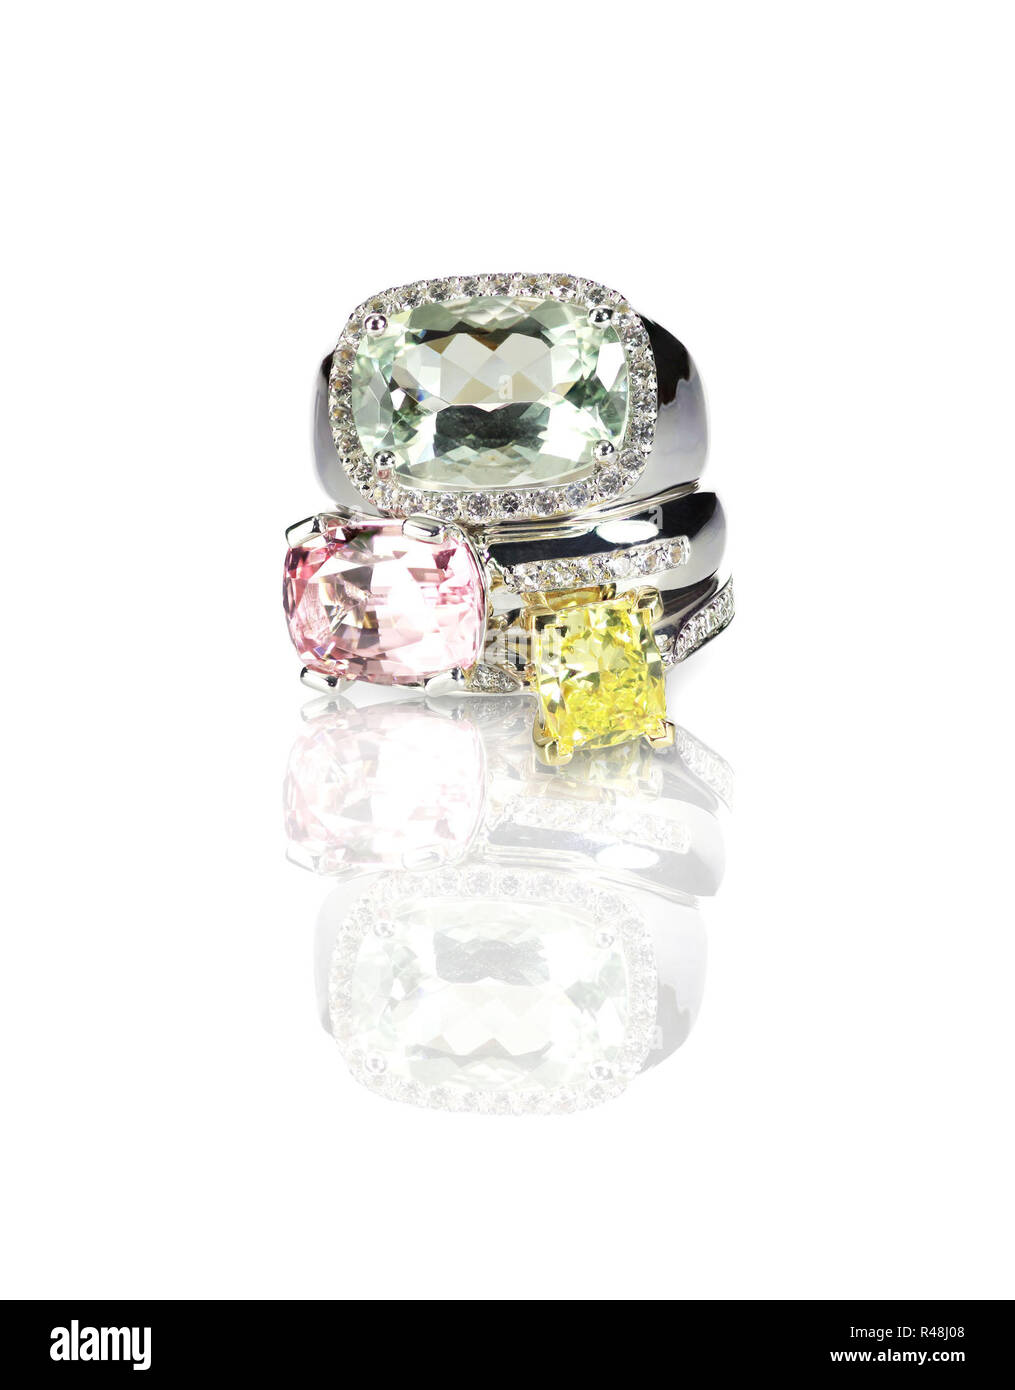 Grouping of colored gemstone diamond rings stacked - Stock Image